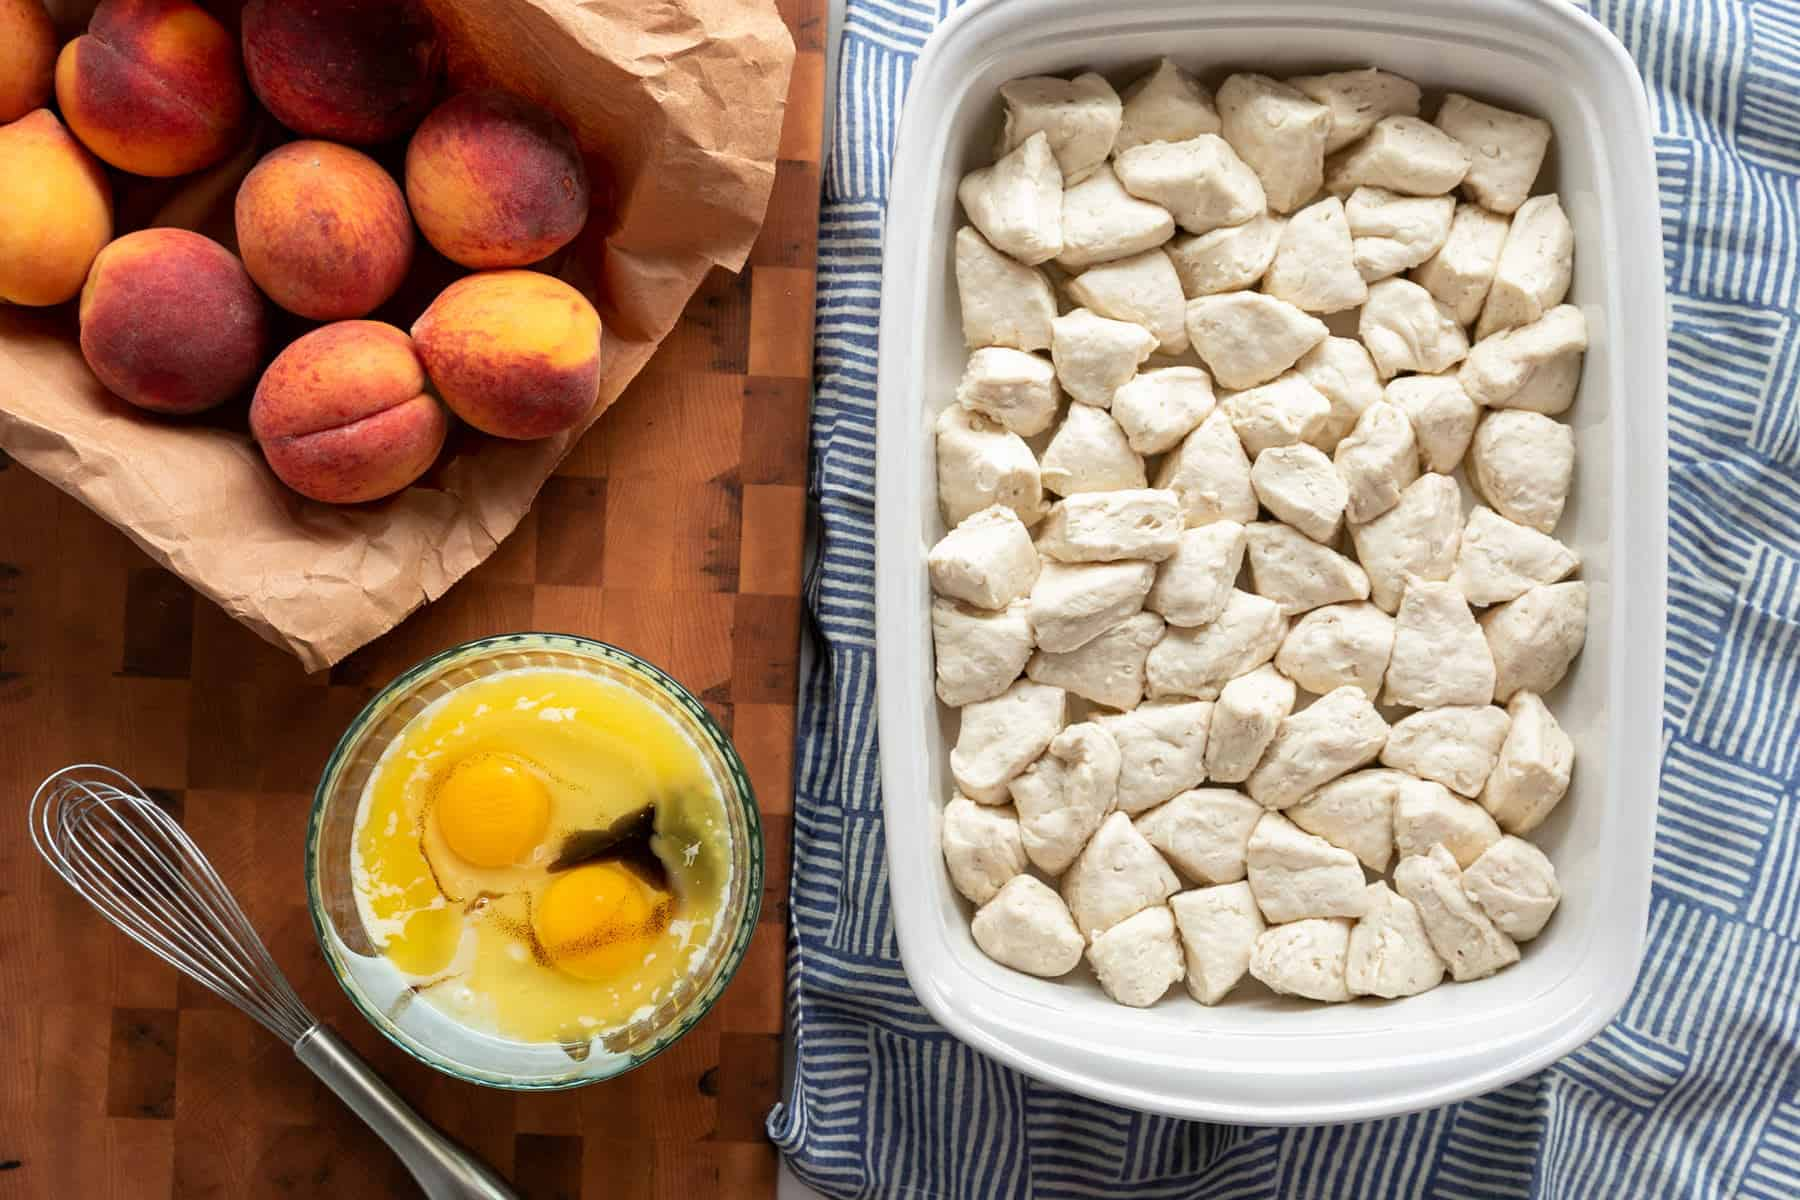 quatered buttermilk biscuits in a casserole dish. Whole peaches in a brown paper bag and a mixing bowl with sweetened condensed milk, egg and vanilla ready to mix and pour over the biscuits